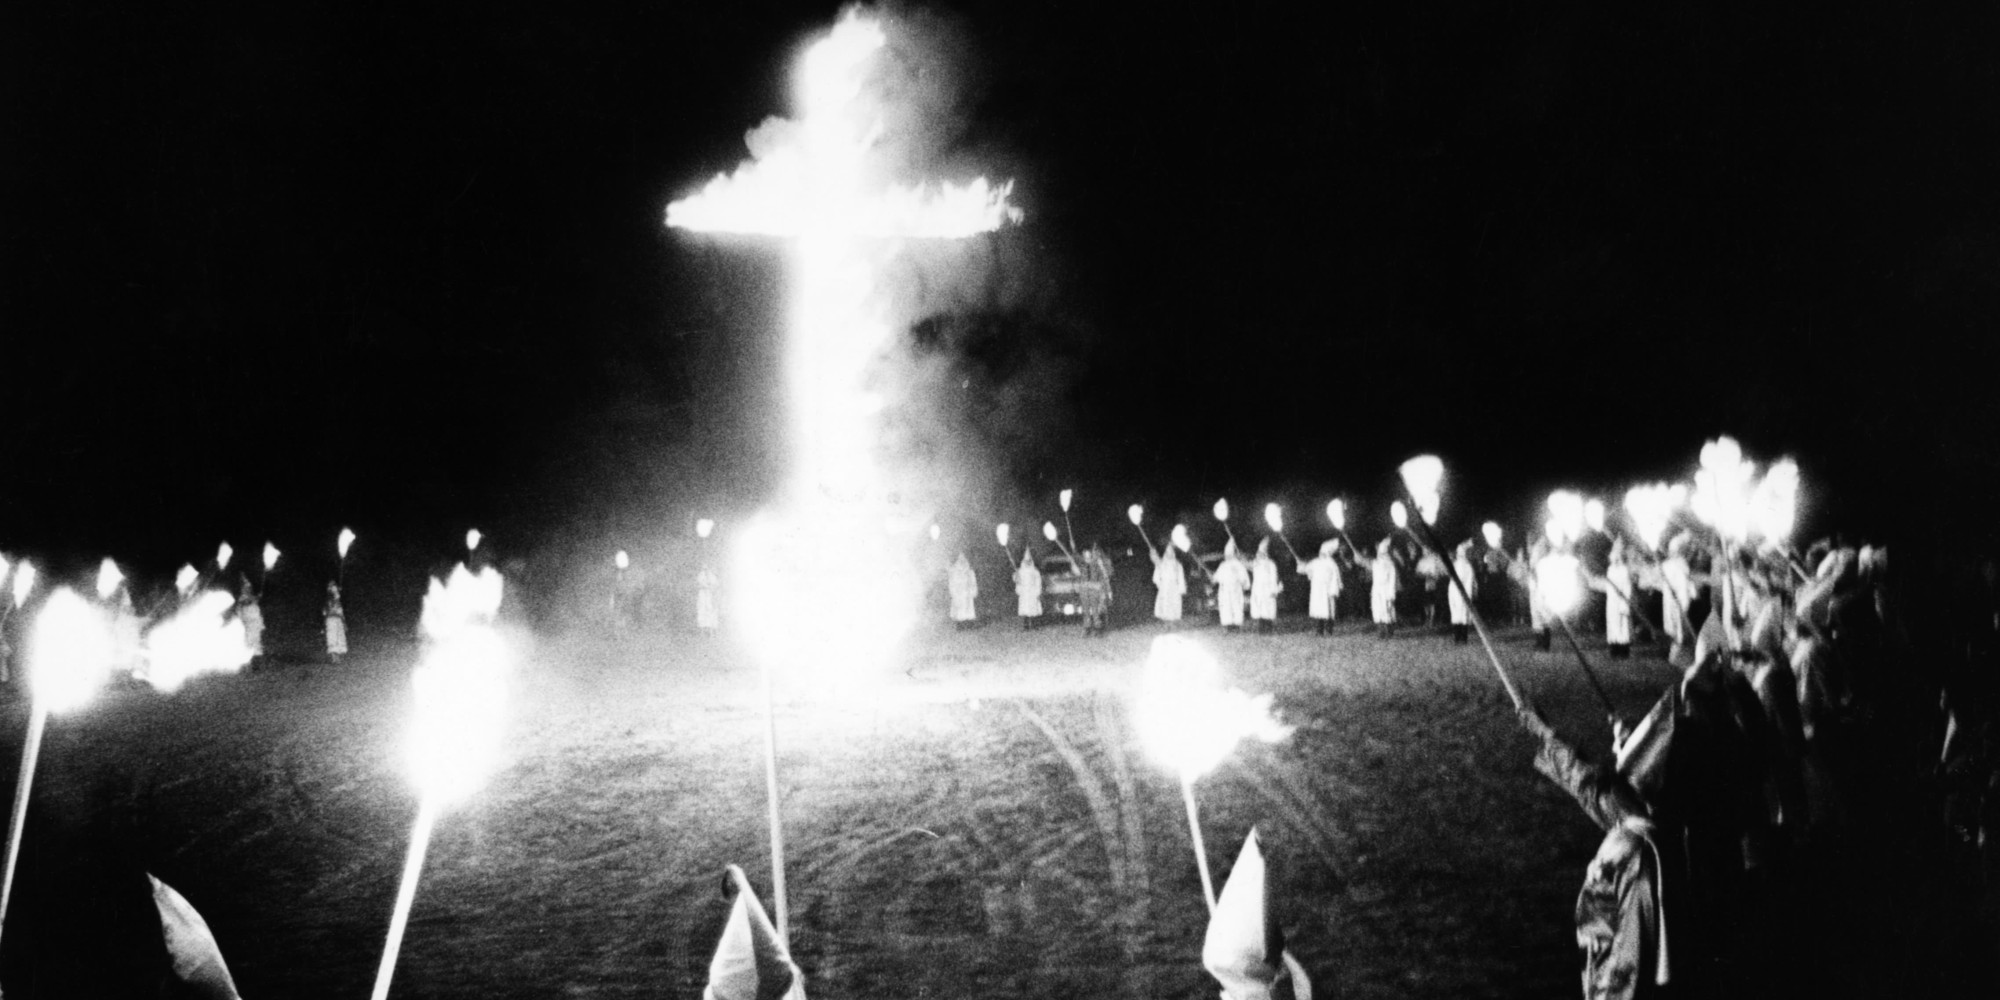 ku klux klan essays The ku klux klan was founded by six veteran soldiers of the confederacy after the loss and the abolishment of slavery with the thirteenth amendment of the us constitution their priorities and motives were about overthrowing the republicans who ended white supremacy and maintaining it once again (mcveigh, r 2009.